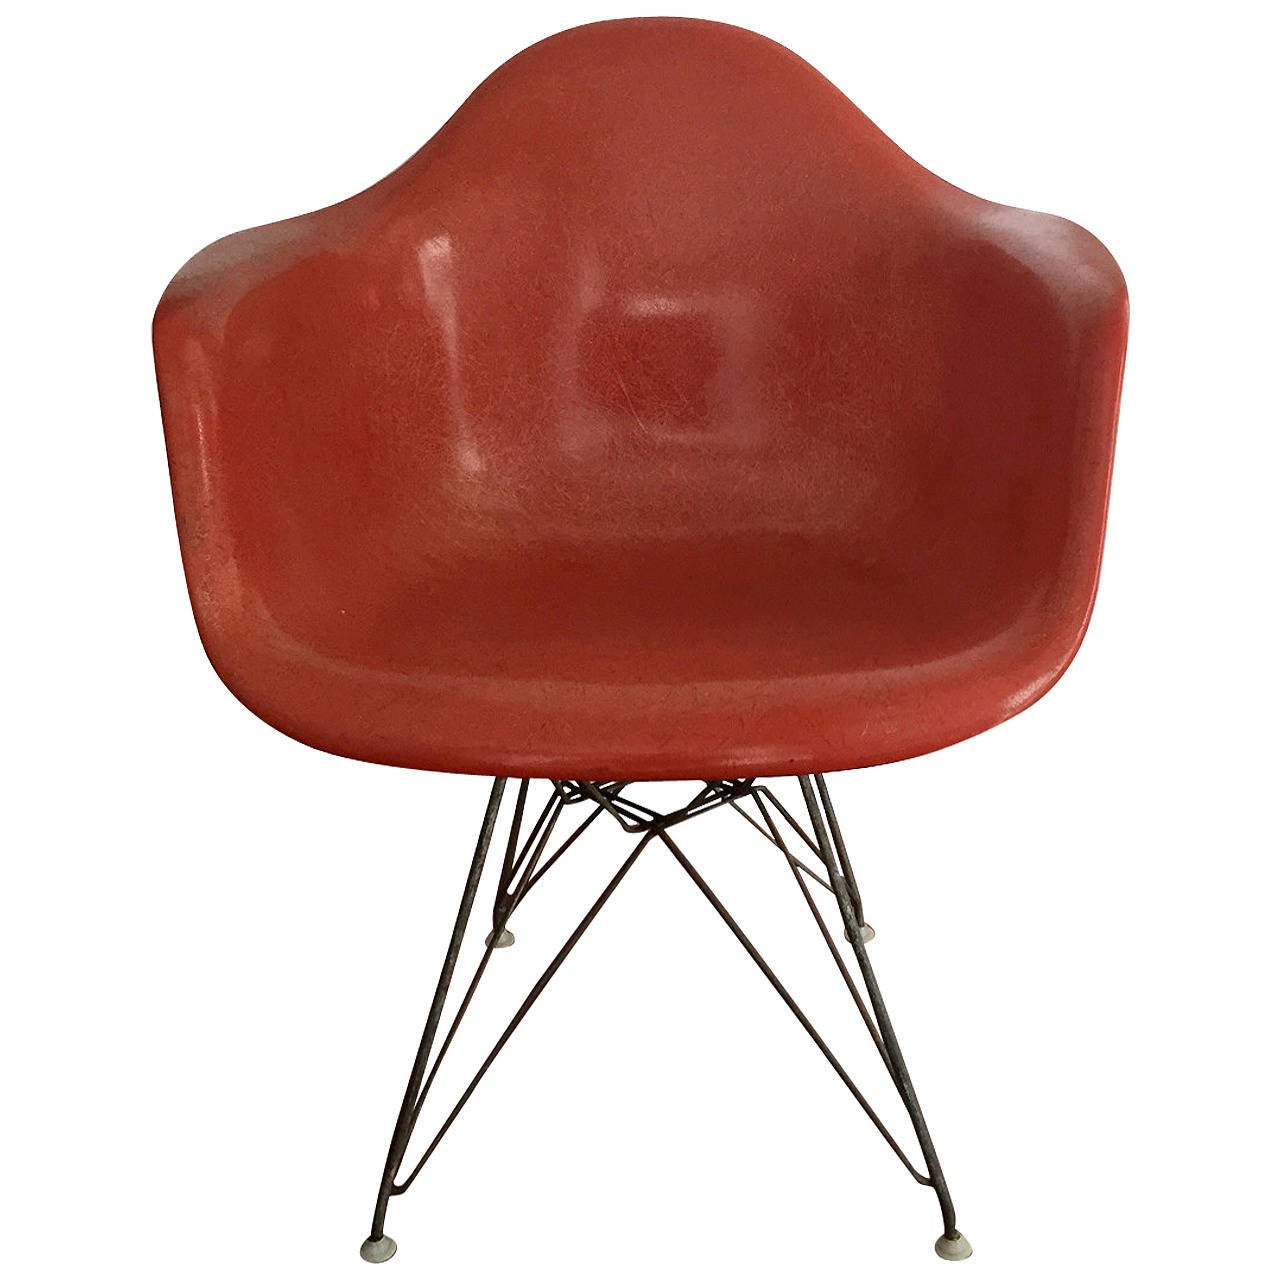 Awesome Early Fiberglass Shell DAR Chair By Charles Eames For Herman Miller 1